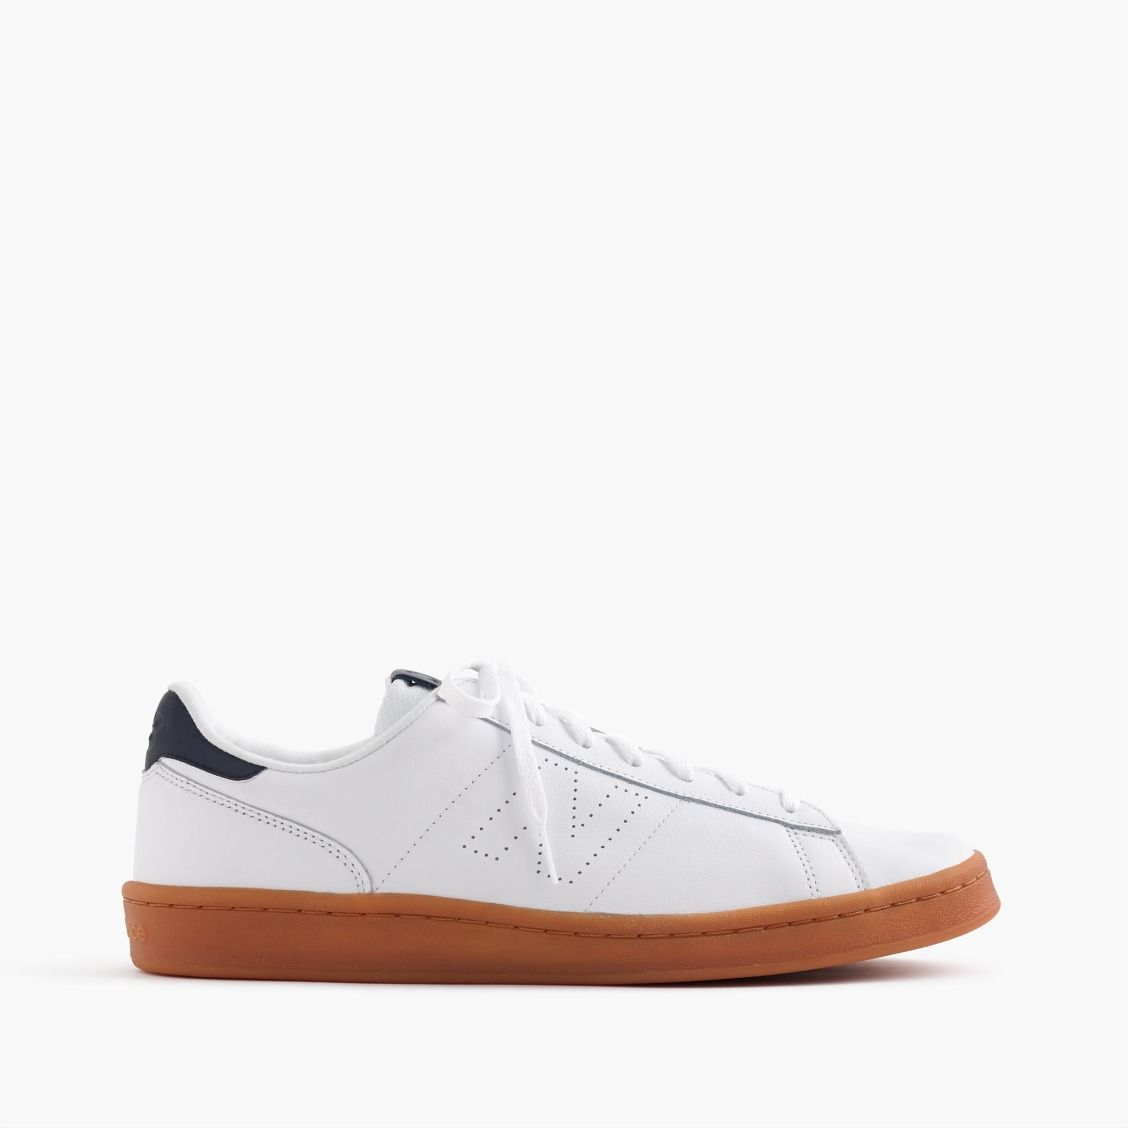 New Balance Leather Low Trainers f0LYPJRI